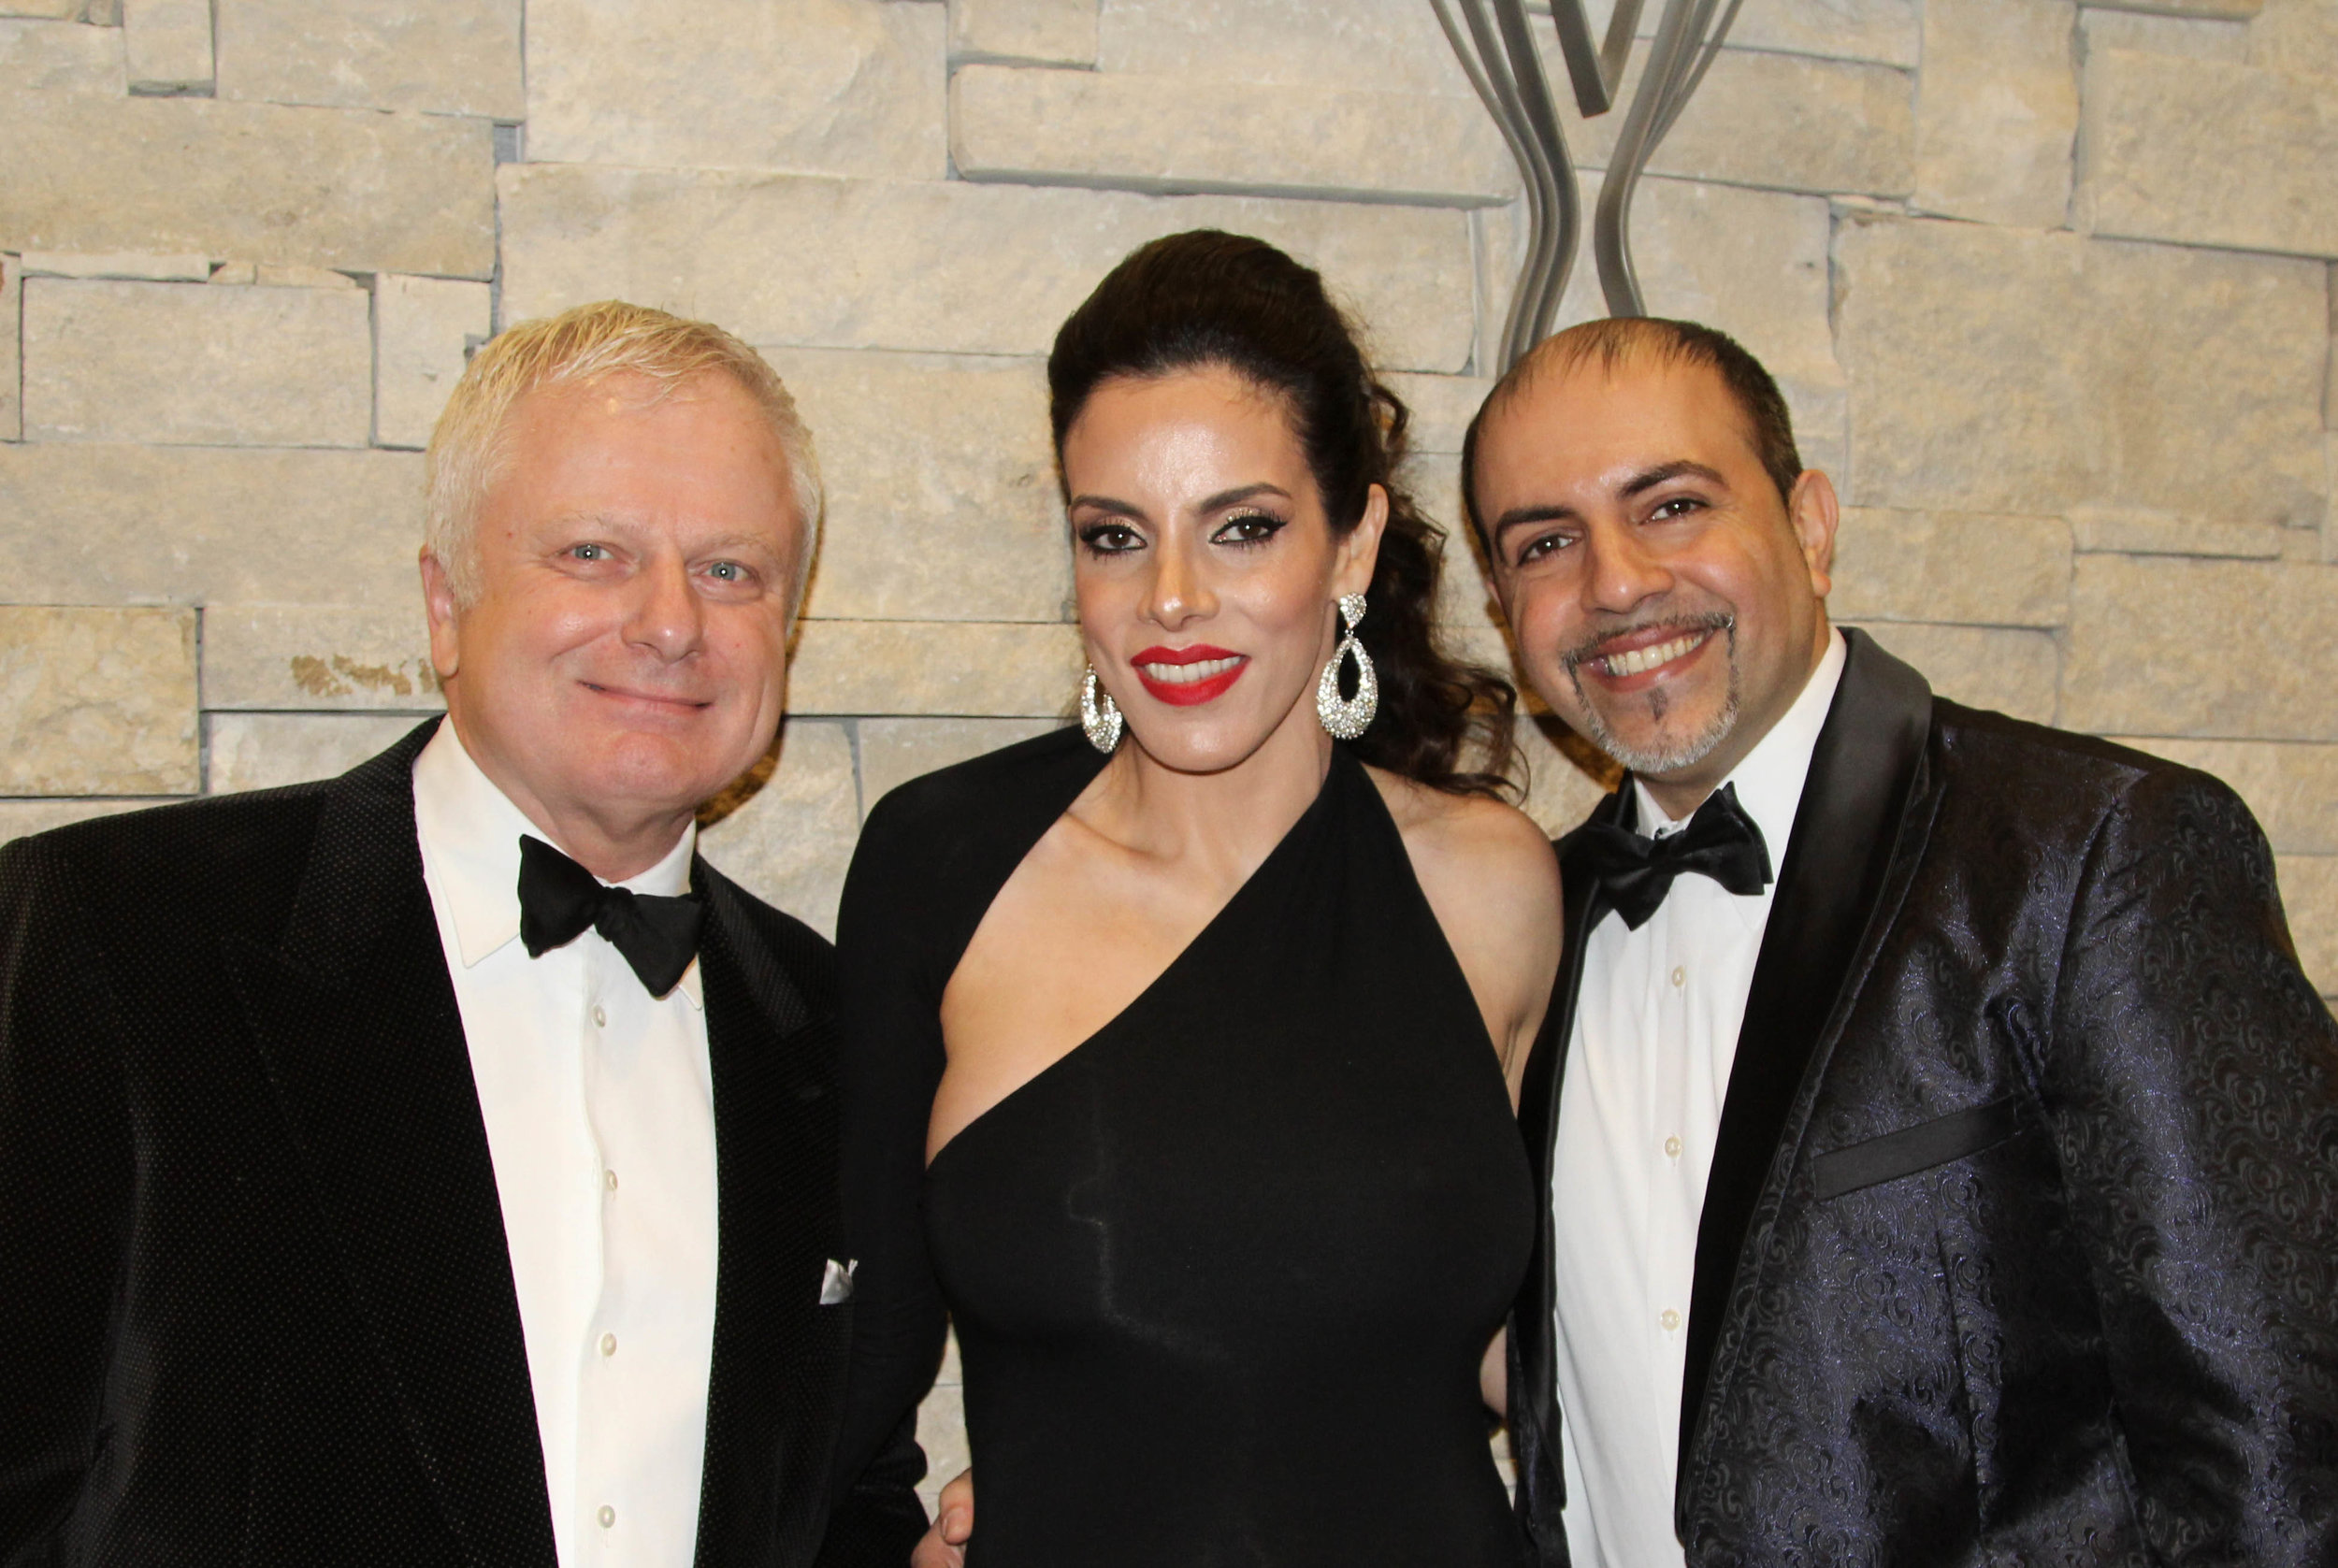 Jeff Brown with Layla and Dr. Hesham Hazin